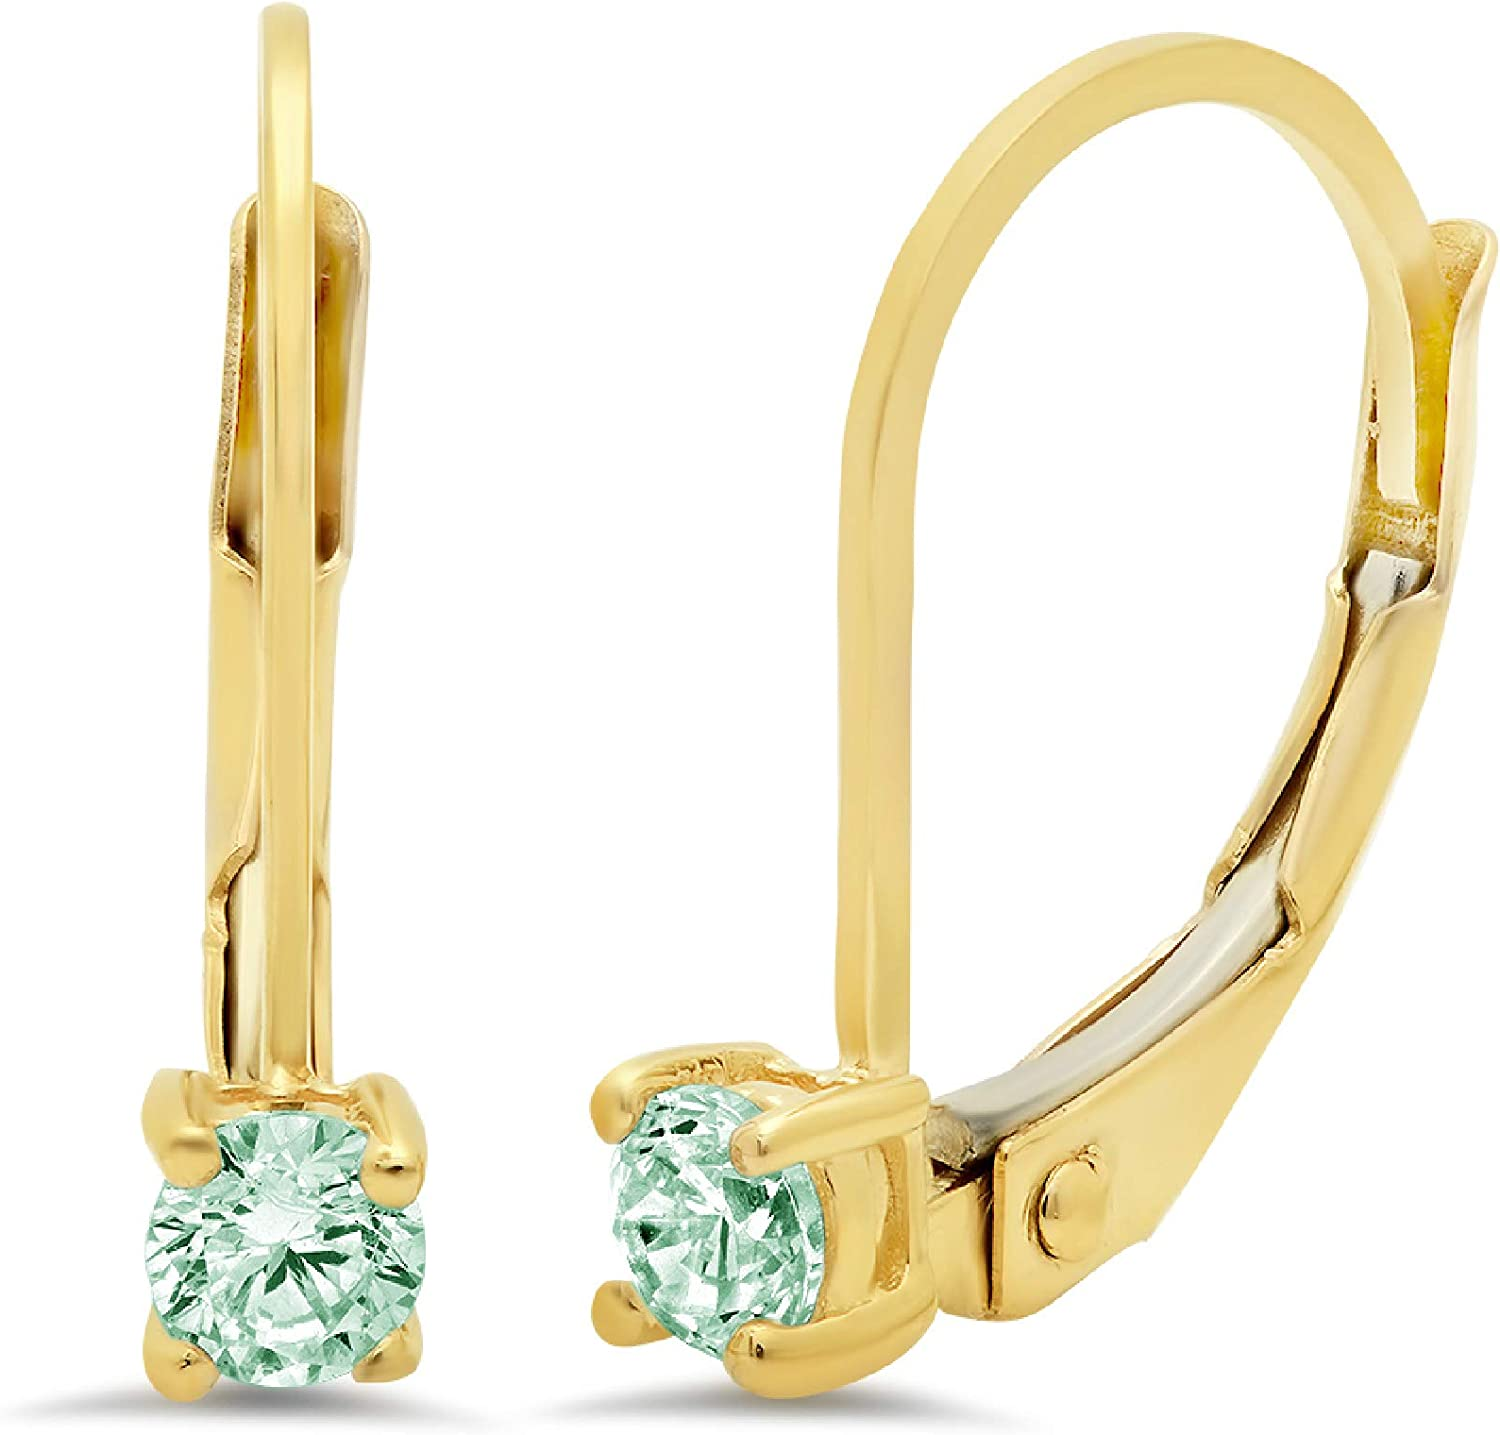 0.4ct Round Cut Solitaire Turquoise Green Simulated Diamond CZ Unisex Lever back Drop Dangle Earrings Solid 14k Yellow Gold conflict free Jewelry